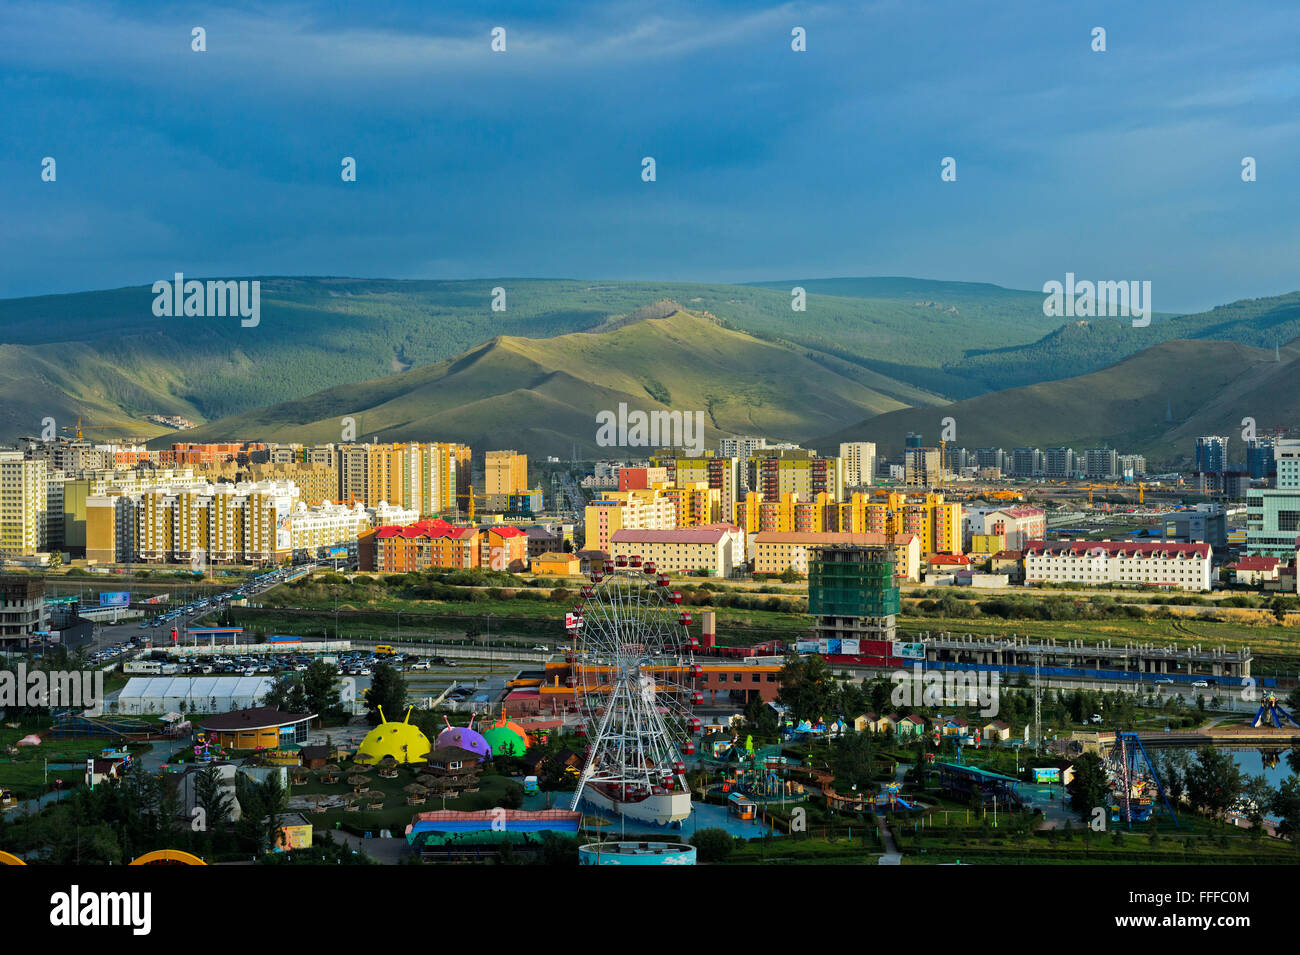 National Amusement Park, behind modern newly built district, Ulan Bator, Mongolia - Stock Image